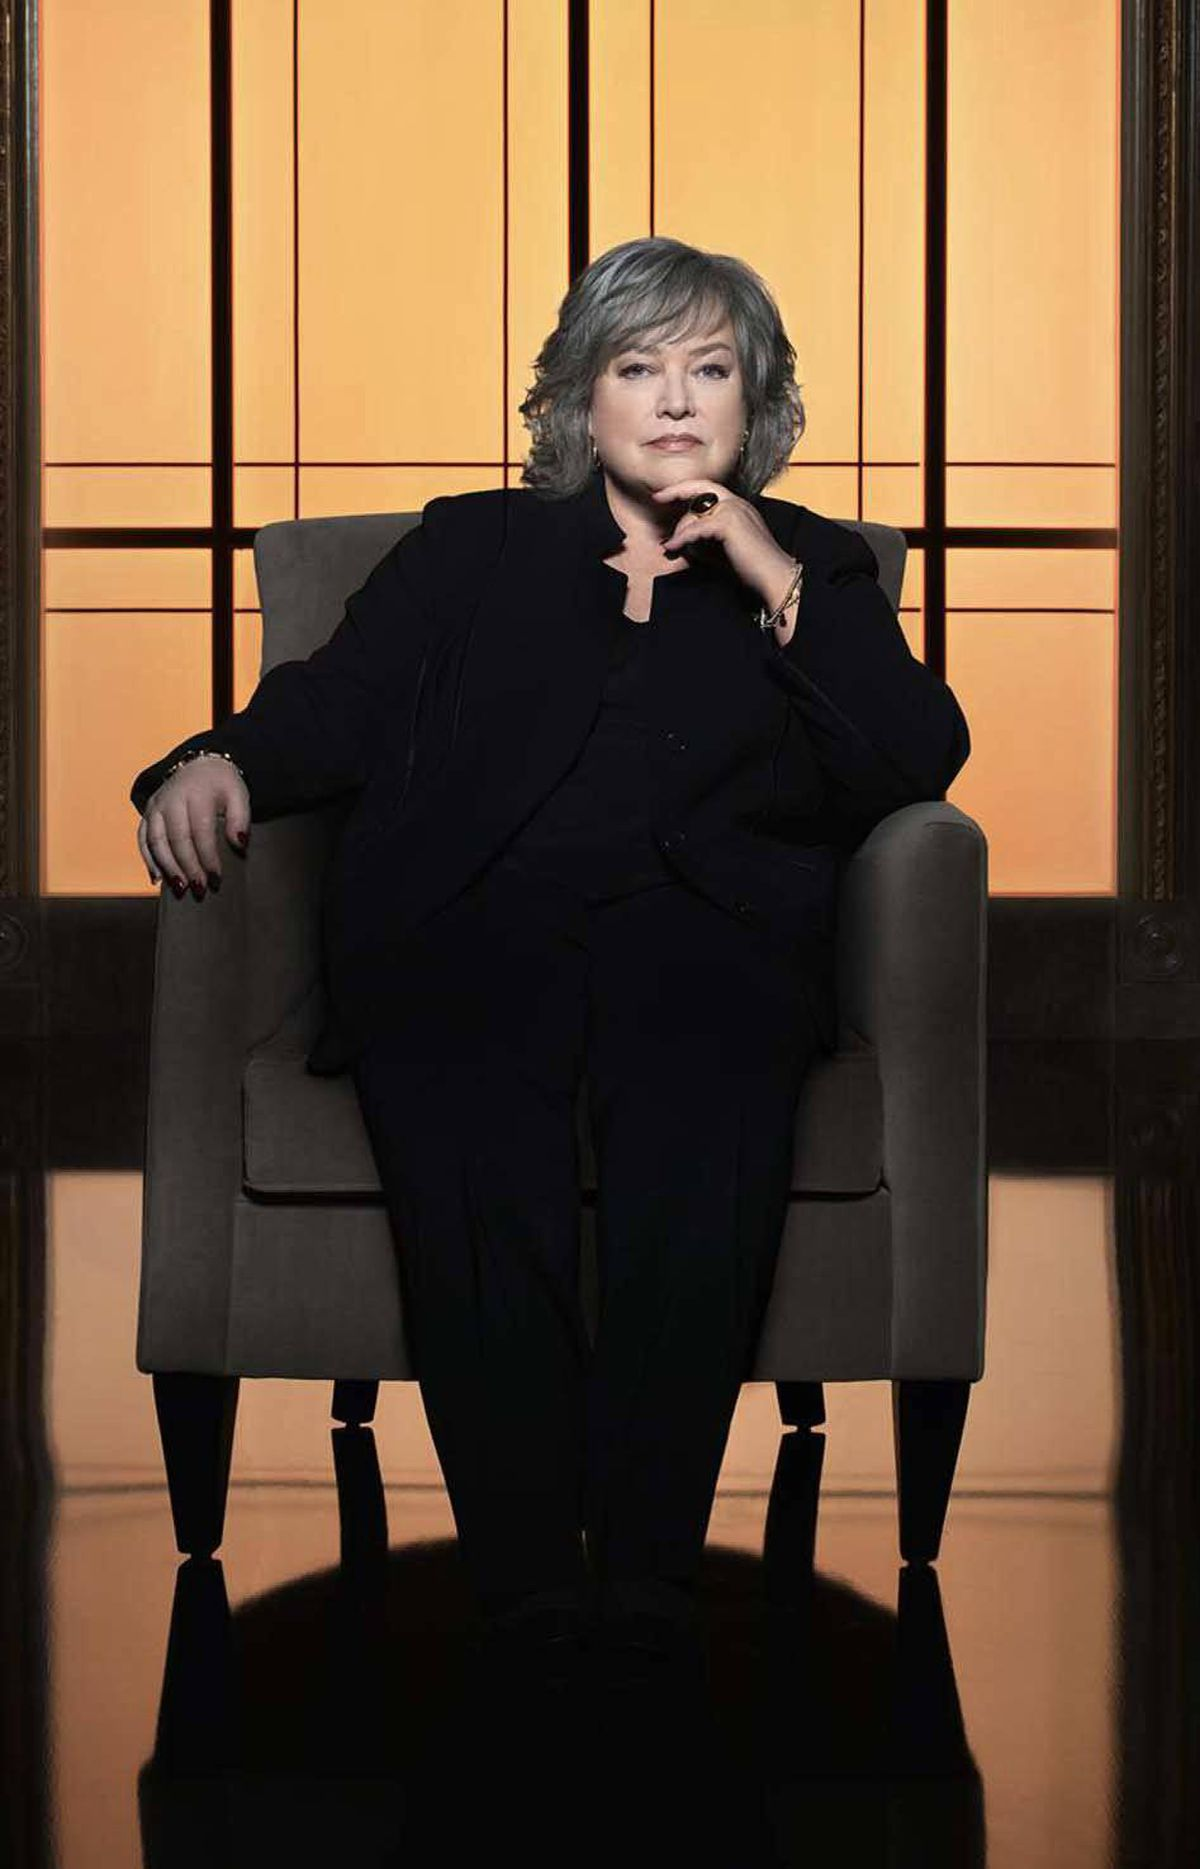 DRAMA Harry's Law NBC, Global, 9 p.m. The danger of sports-related head concussions has been dominating the news in recent months and now it has trickled down to network television. In tonight's new episode, storefront lawyer Harry (Kathy Bates) argues on the behalf of parents whose son died after sustaining a concussive head blow while playing high school football. At the same time, Harry's legal colleague Tommy (Christopher McDonald) takes the case a struggling single mother who robbed a bank to pay her bills. Don't get any ideas.